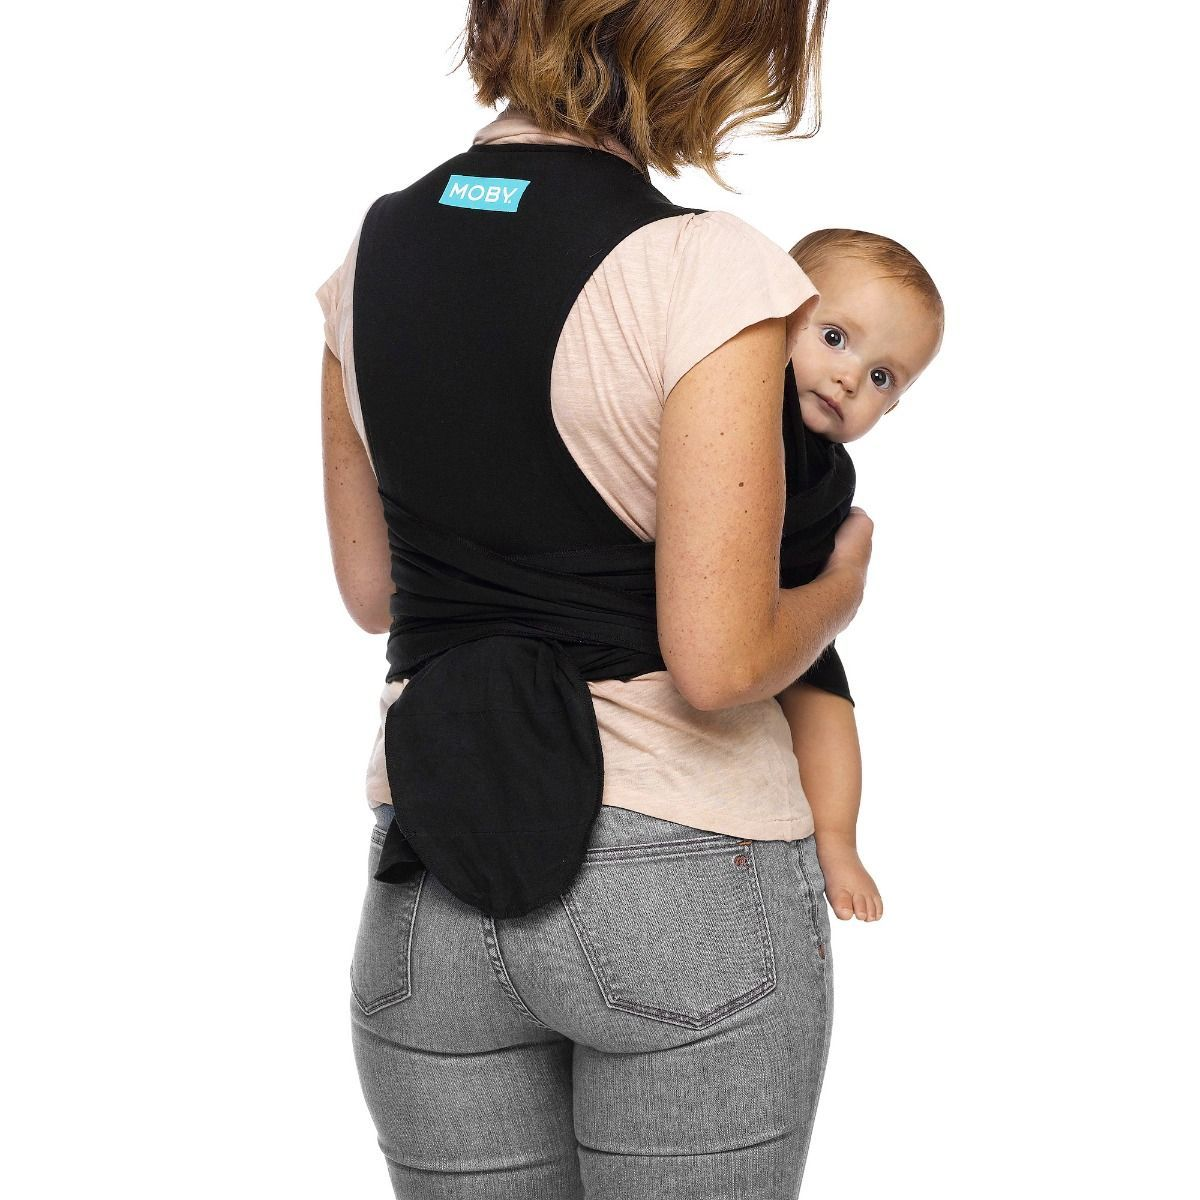 Moby Fit Baby Carrier - Black image